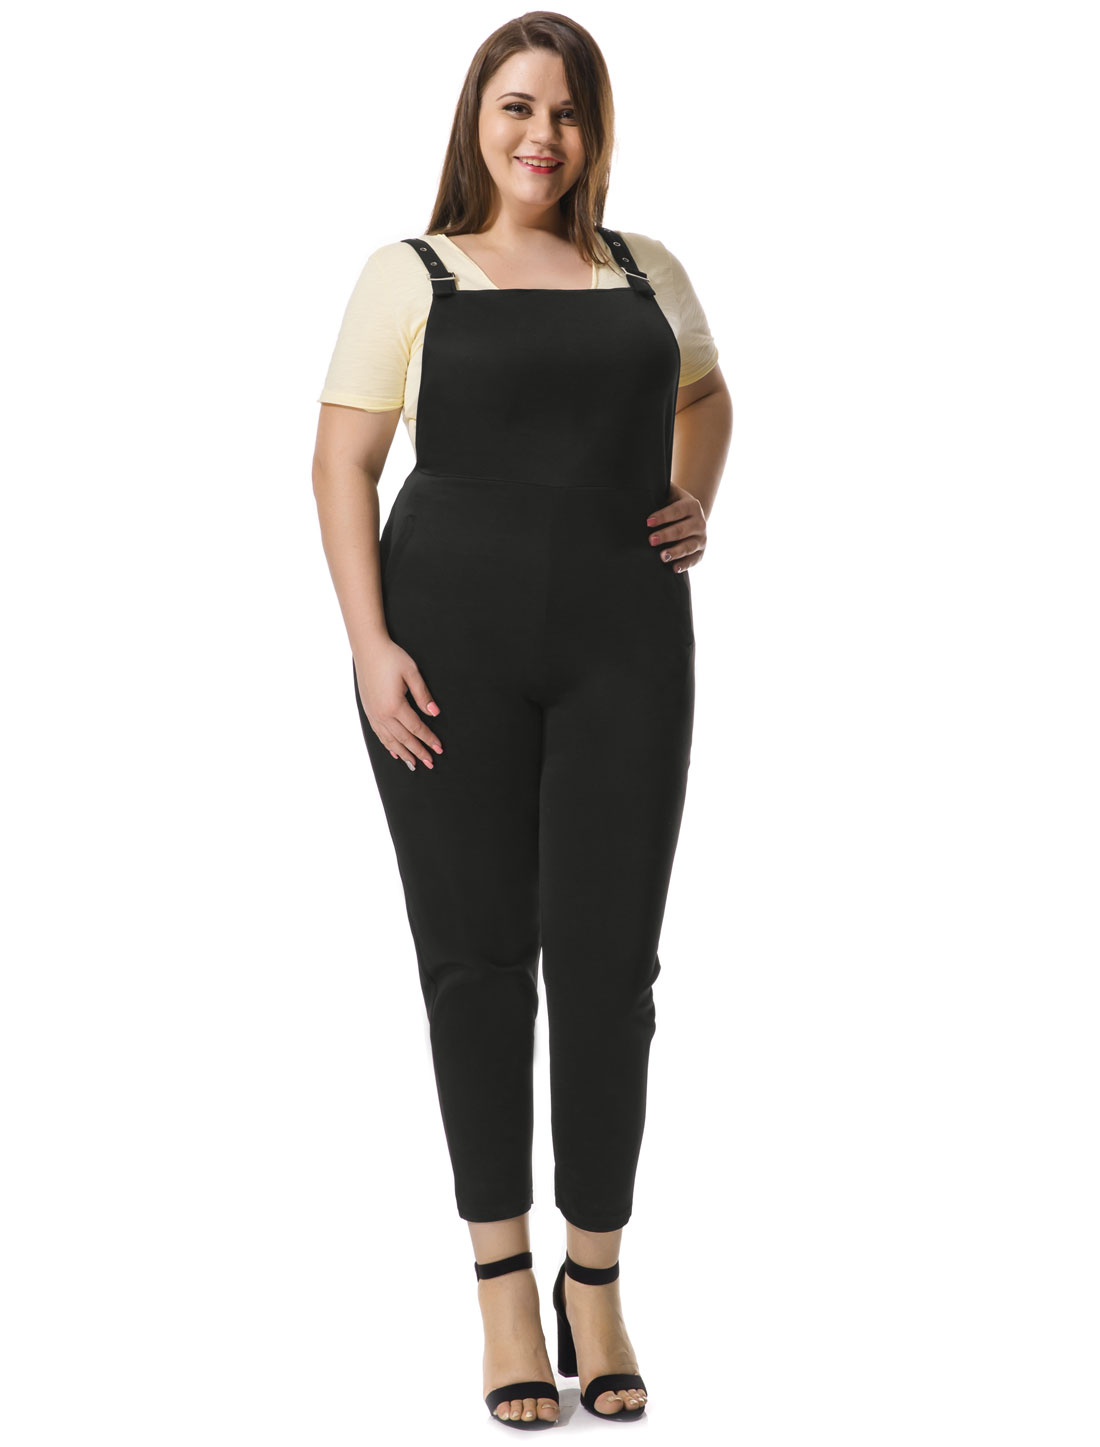 Women Plus Size Pinafore Overalls w Side Pockets Black 2X